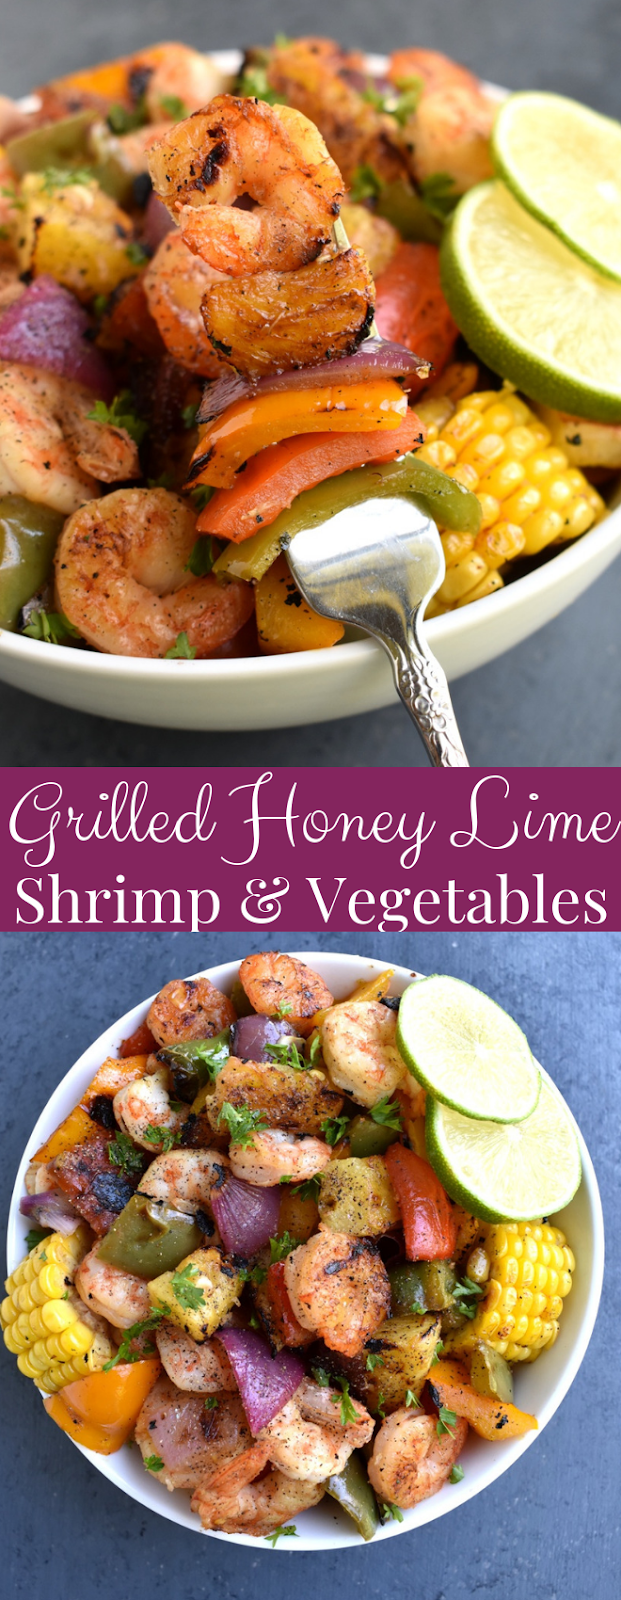 Grilled Honey Lime Shrimp and Vegetables recipe